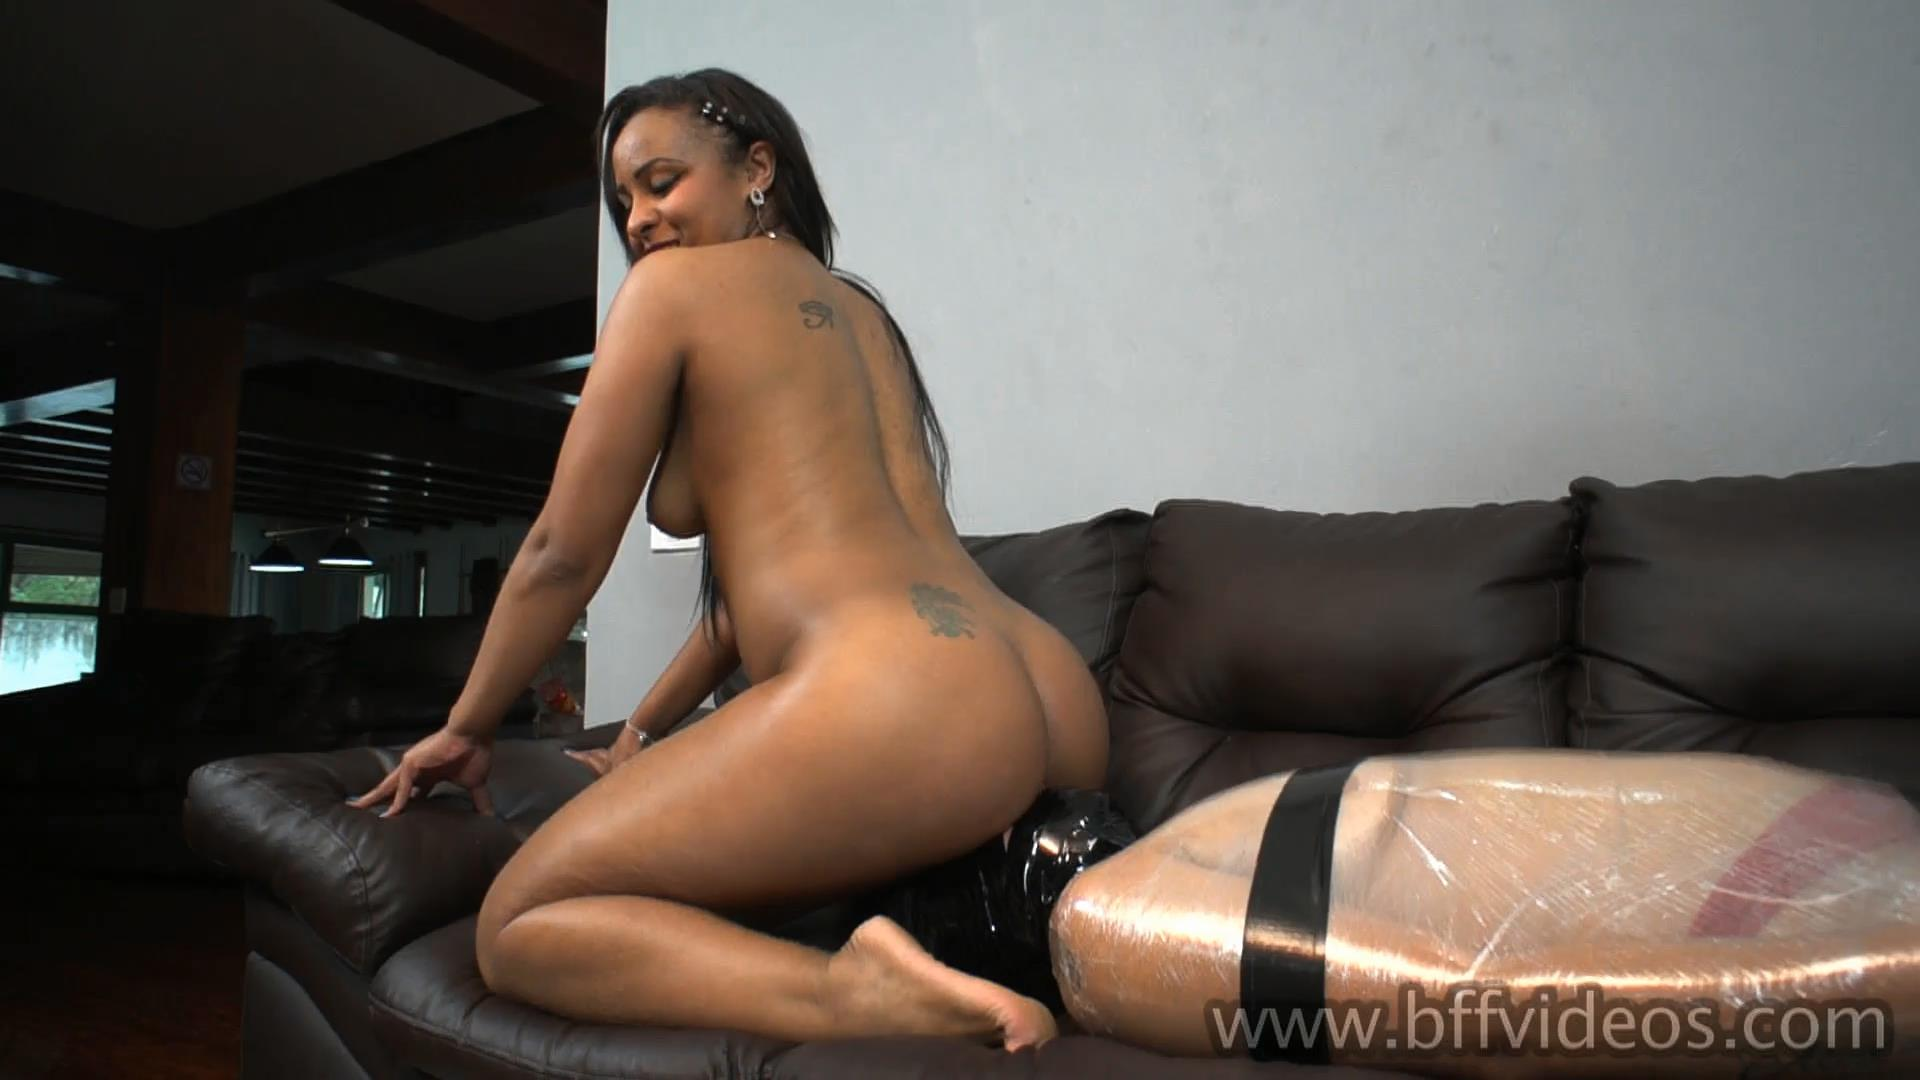 Black Goddess Wrapped Farting Session Full - BFFVIDEOS - FULL HD/1080p/MP4